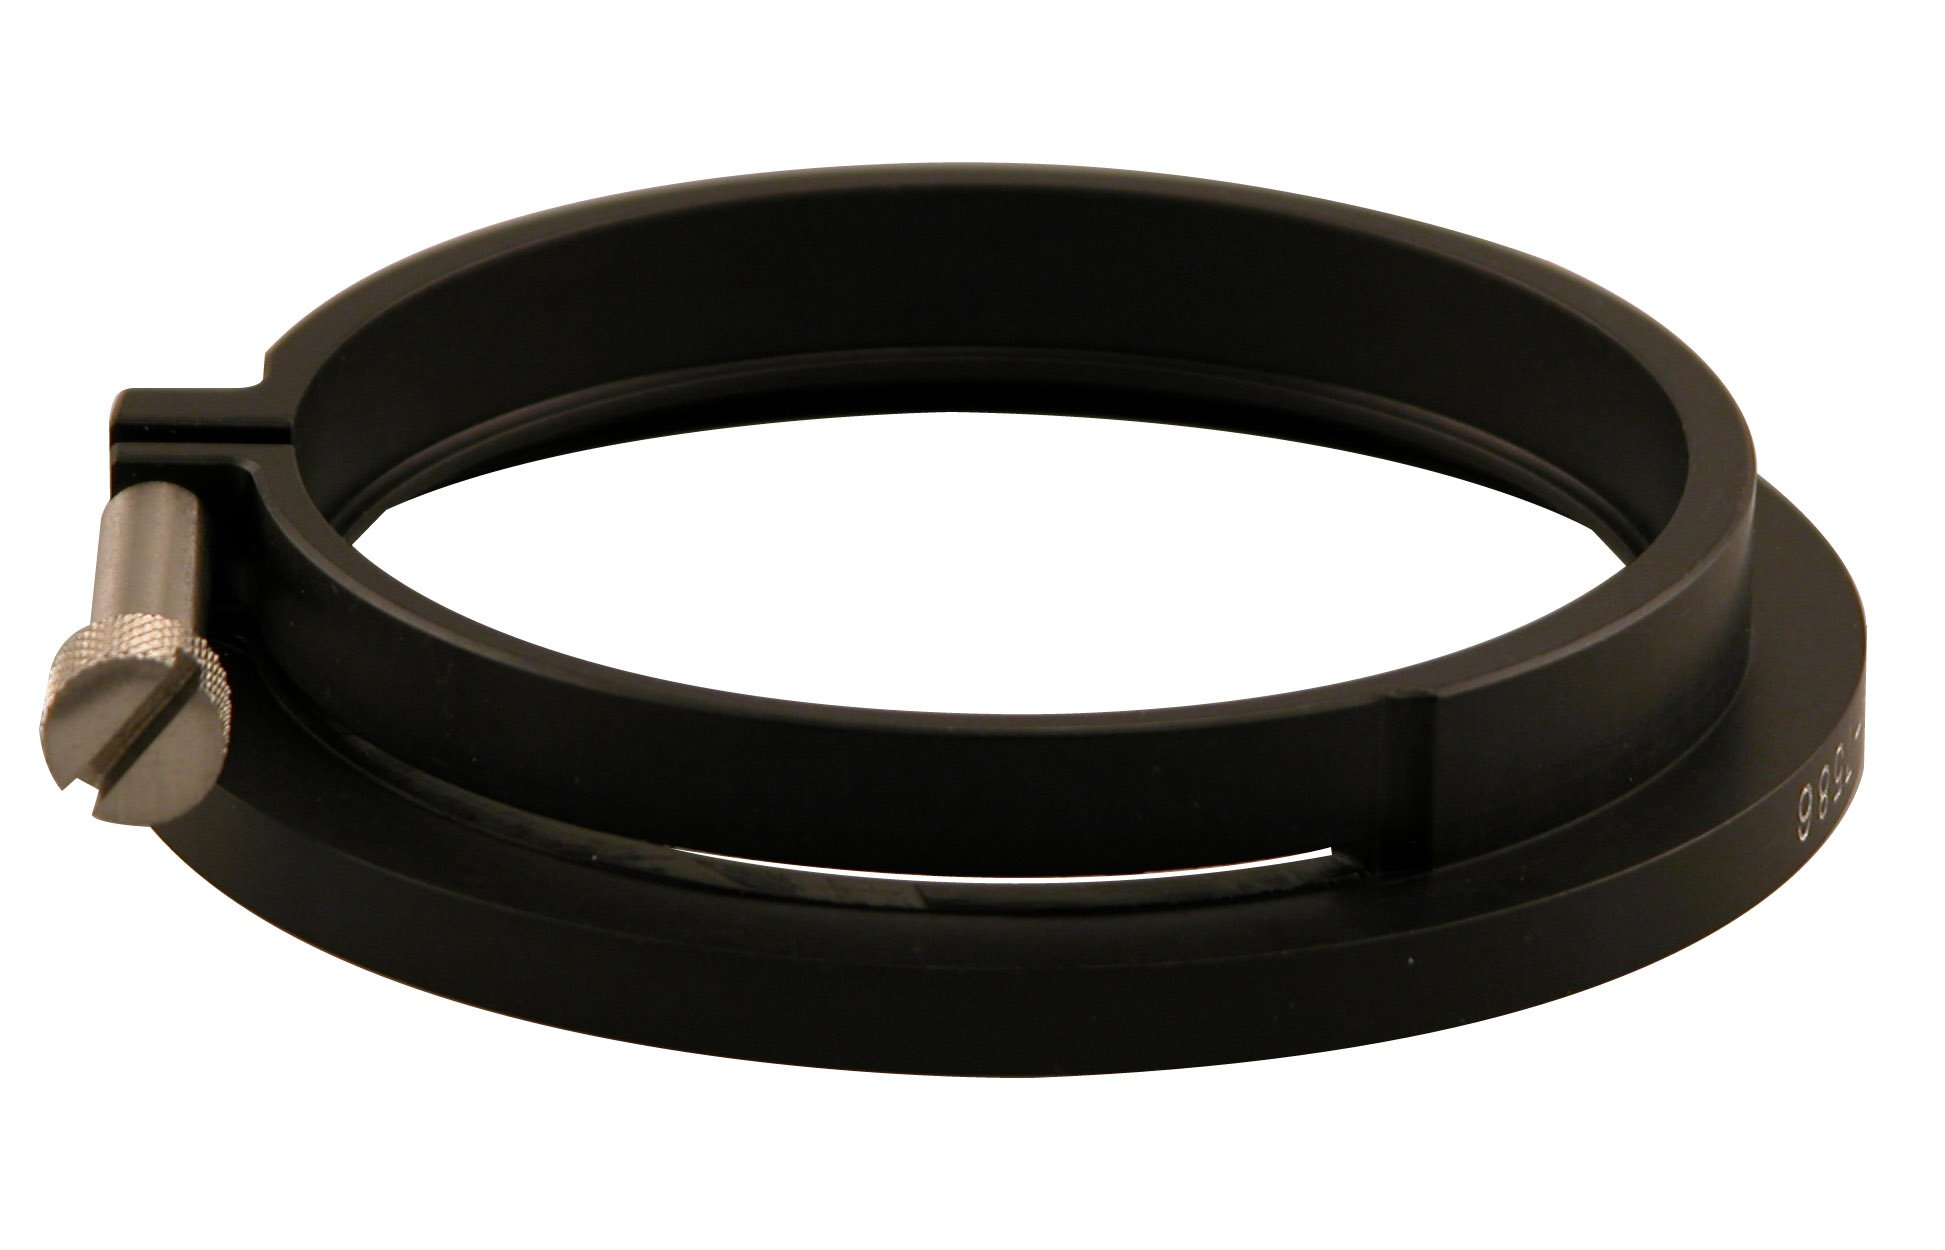 Century 75mm  Slip-on to 86mm Ring